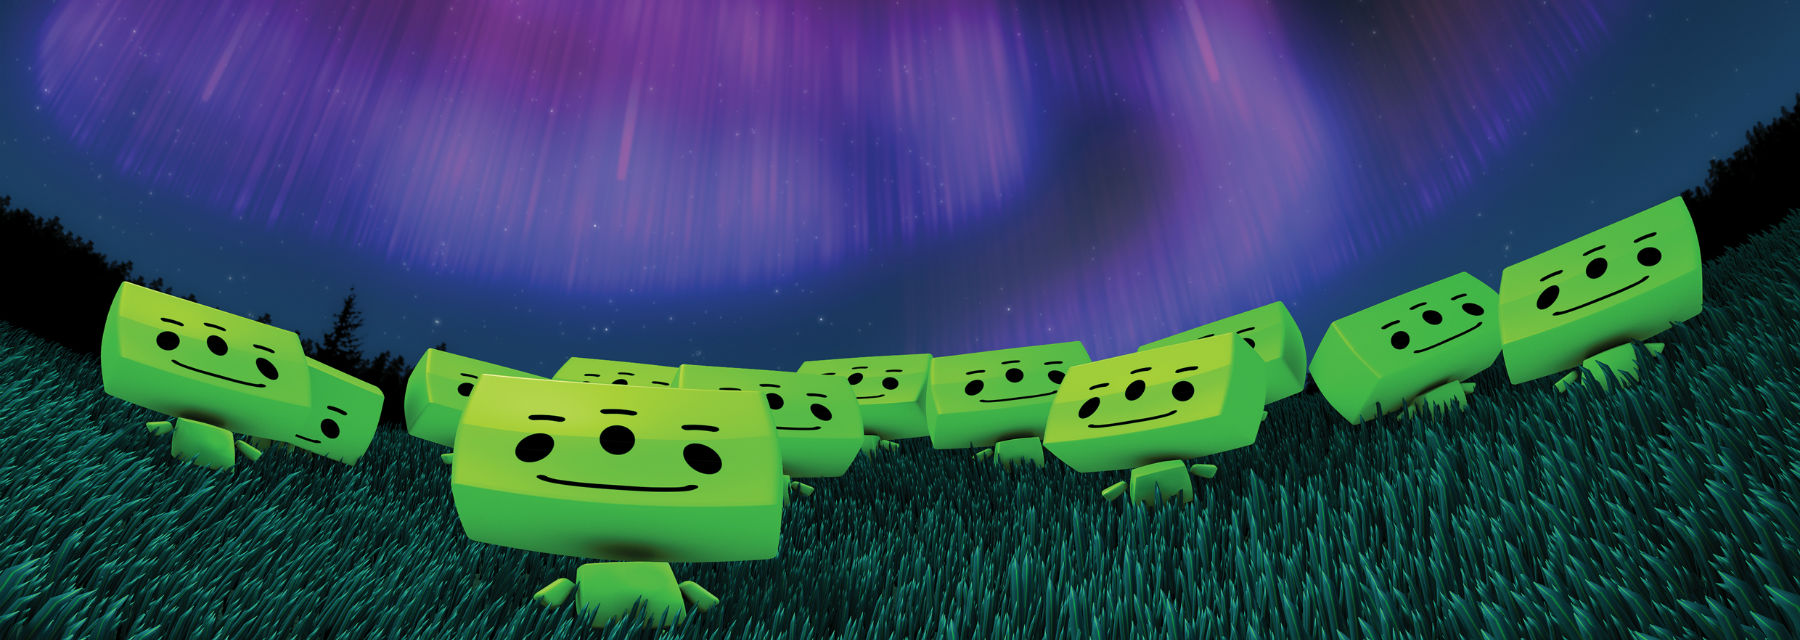 Green aliens look up into space. Image: 'We Are Aliens' fulldome film - NSC Creative